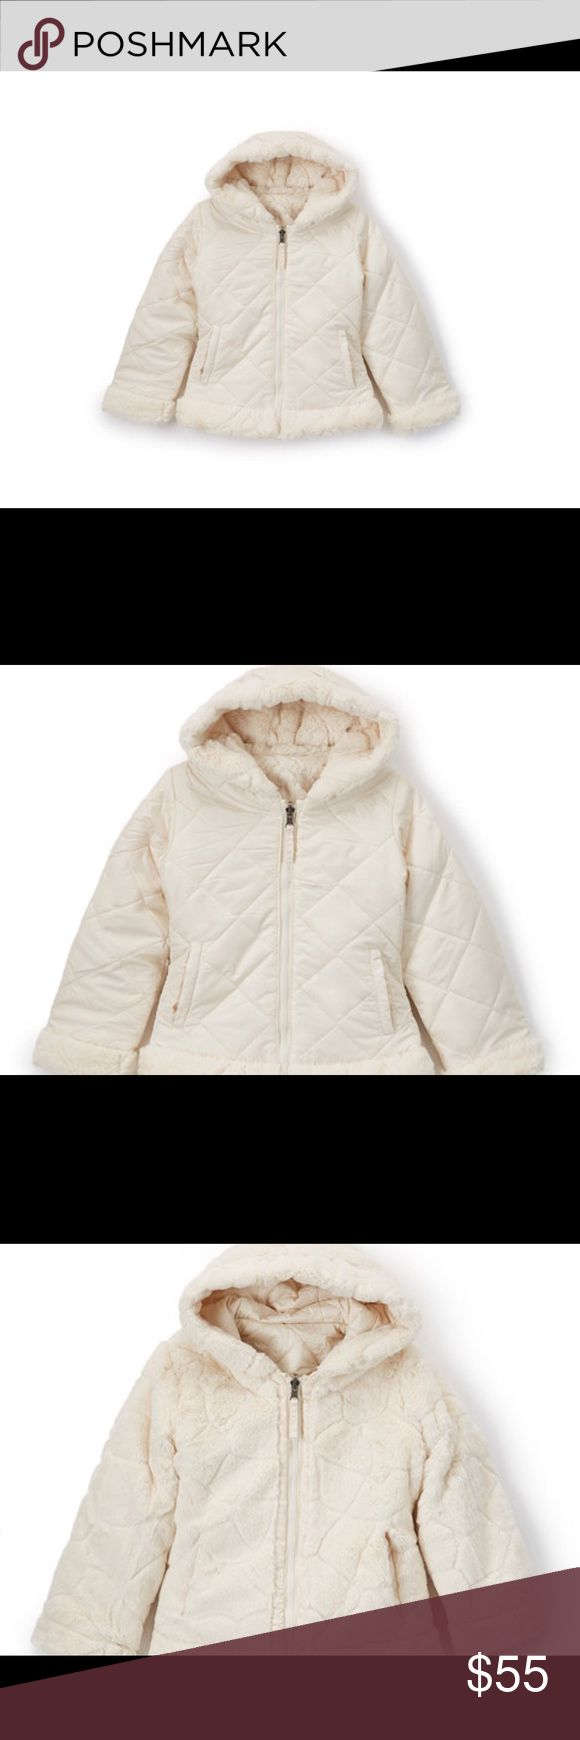 NWT Hawke & Co Winter Reversible Coat Milk Shake Reversible Quilted Jacket Coat - Girls Hawke & Co.  This cozy quilted coat jacket boasts a reversible design that lends added styling options to a cold-weather outfit while ensuring comfortable warmth.  100% polyester Machine wash; tumble dry Imported Brand new with tags. Hawke & Co Jackets & Coats